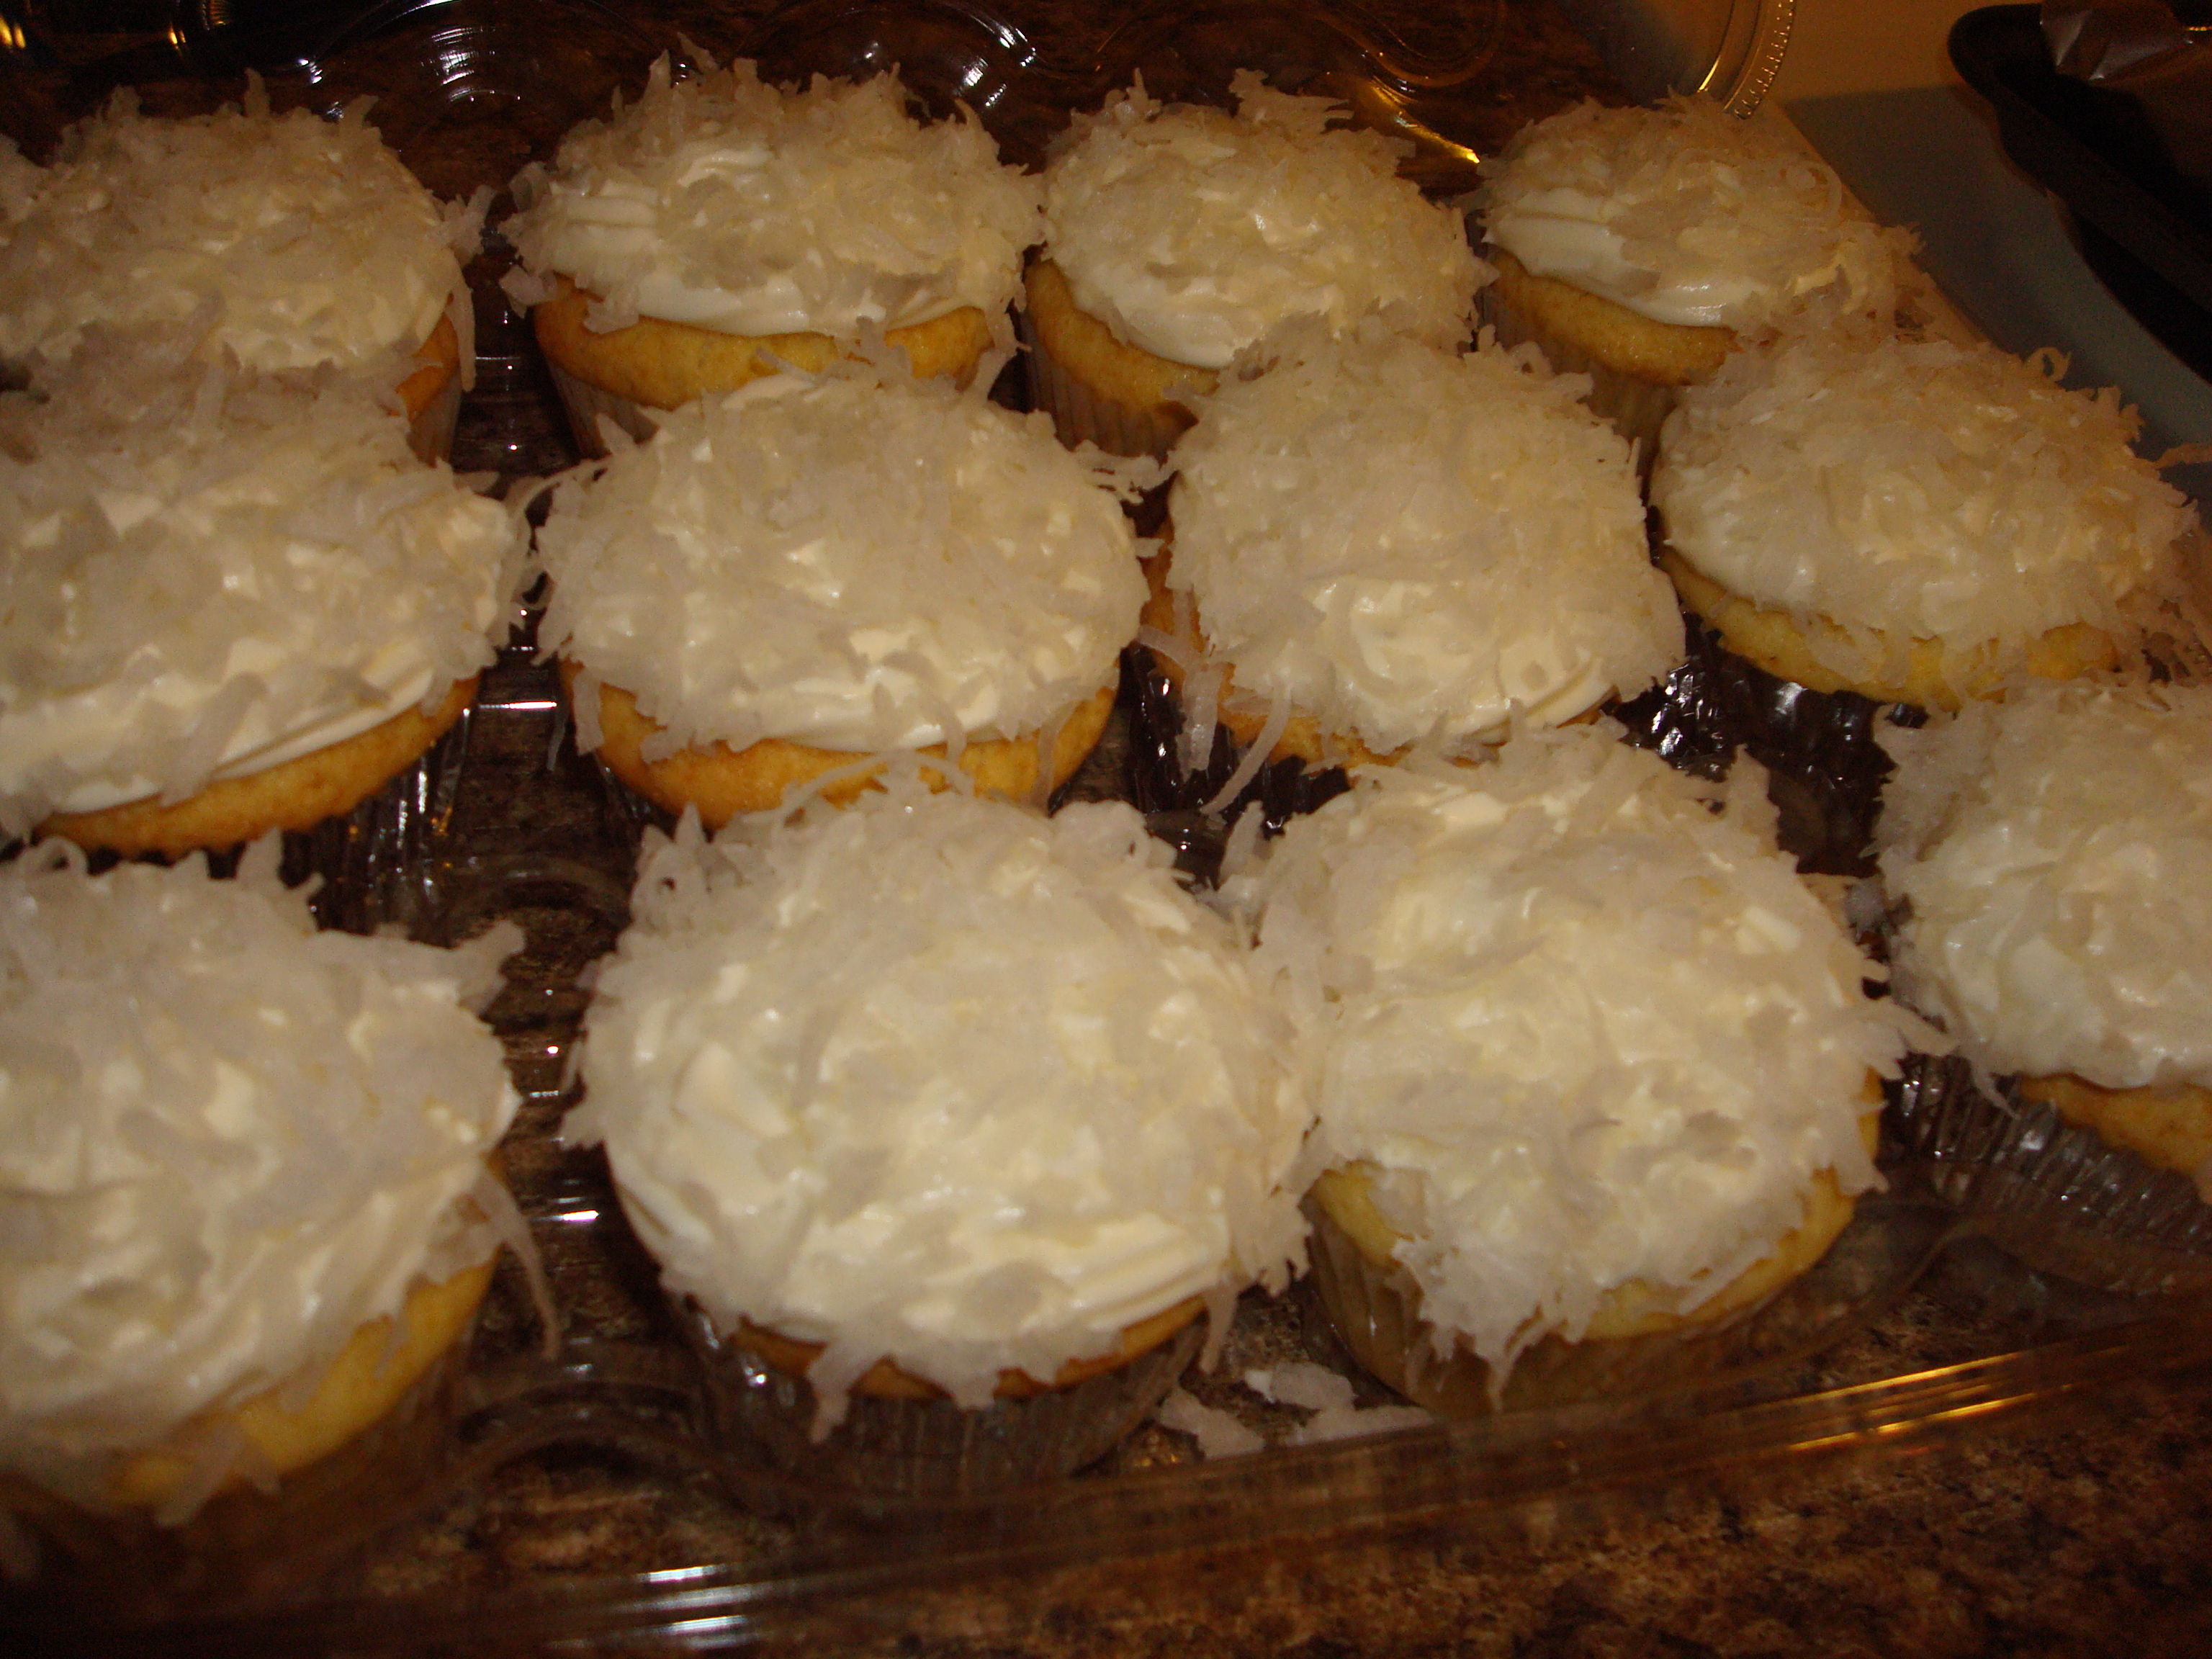 ... lemon cupcakes with cream cheese lemon coconut frosting! Yes, please